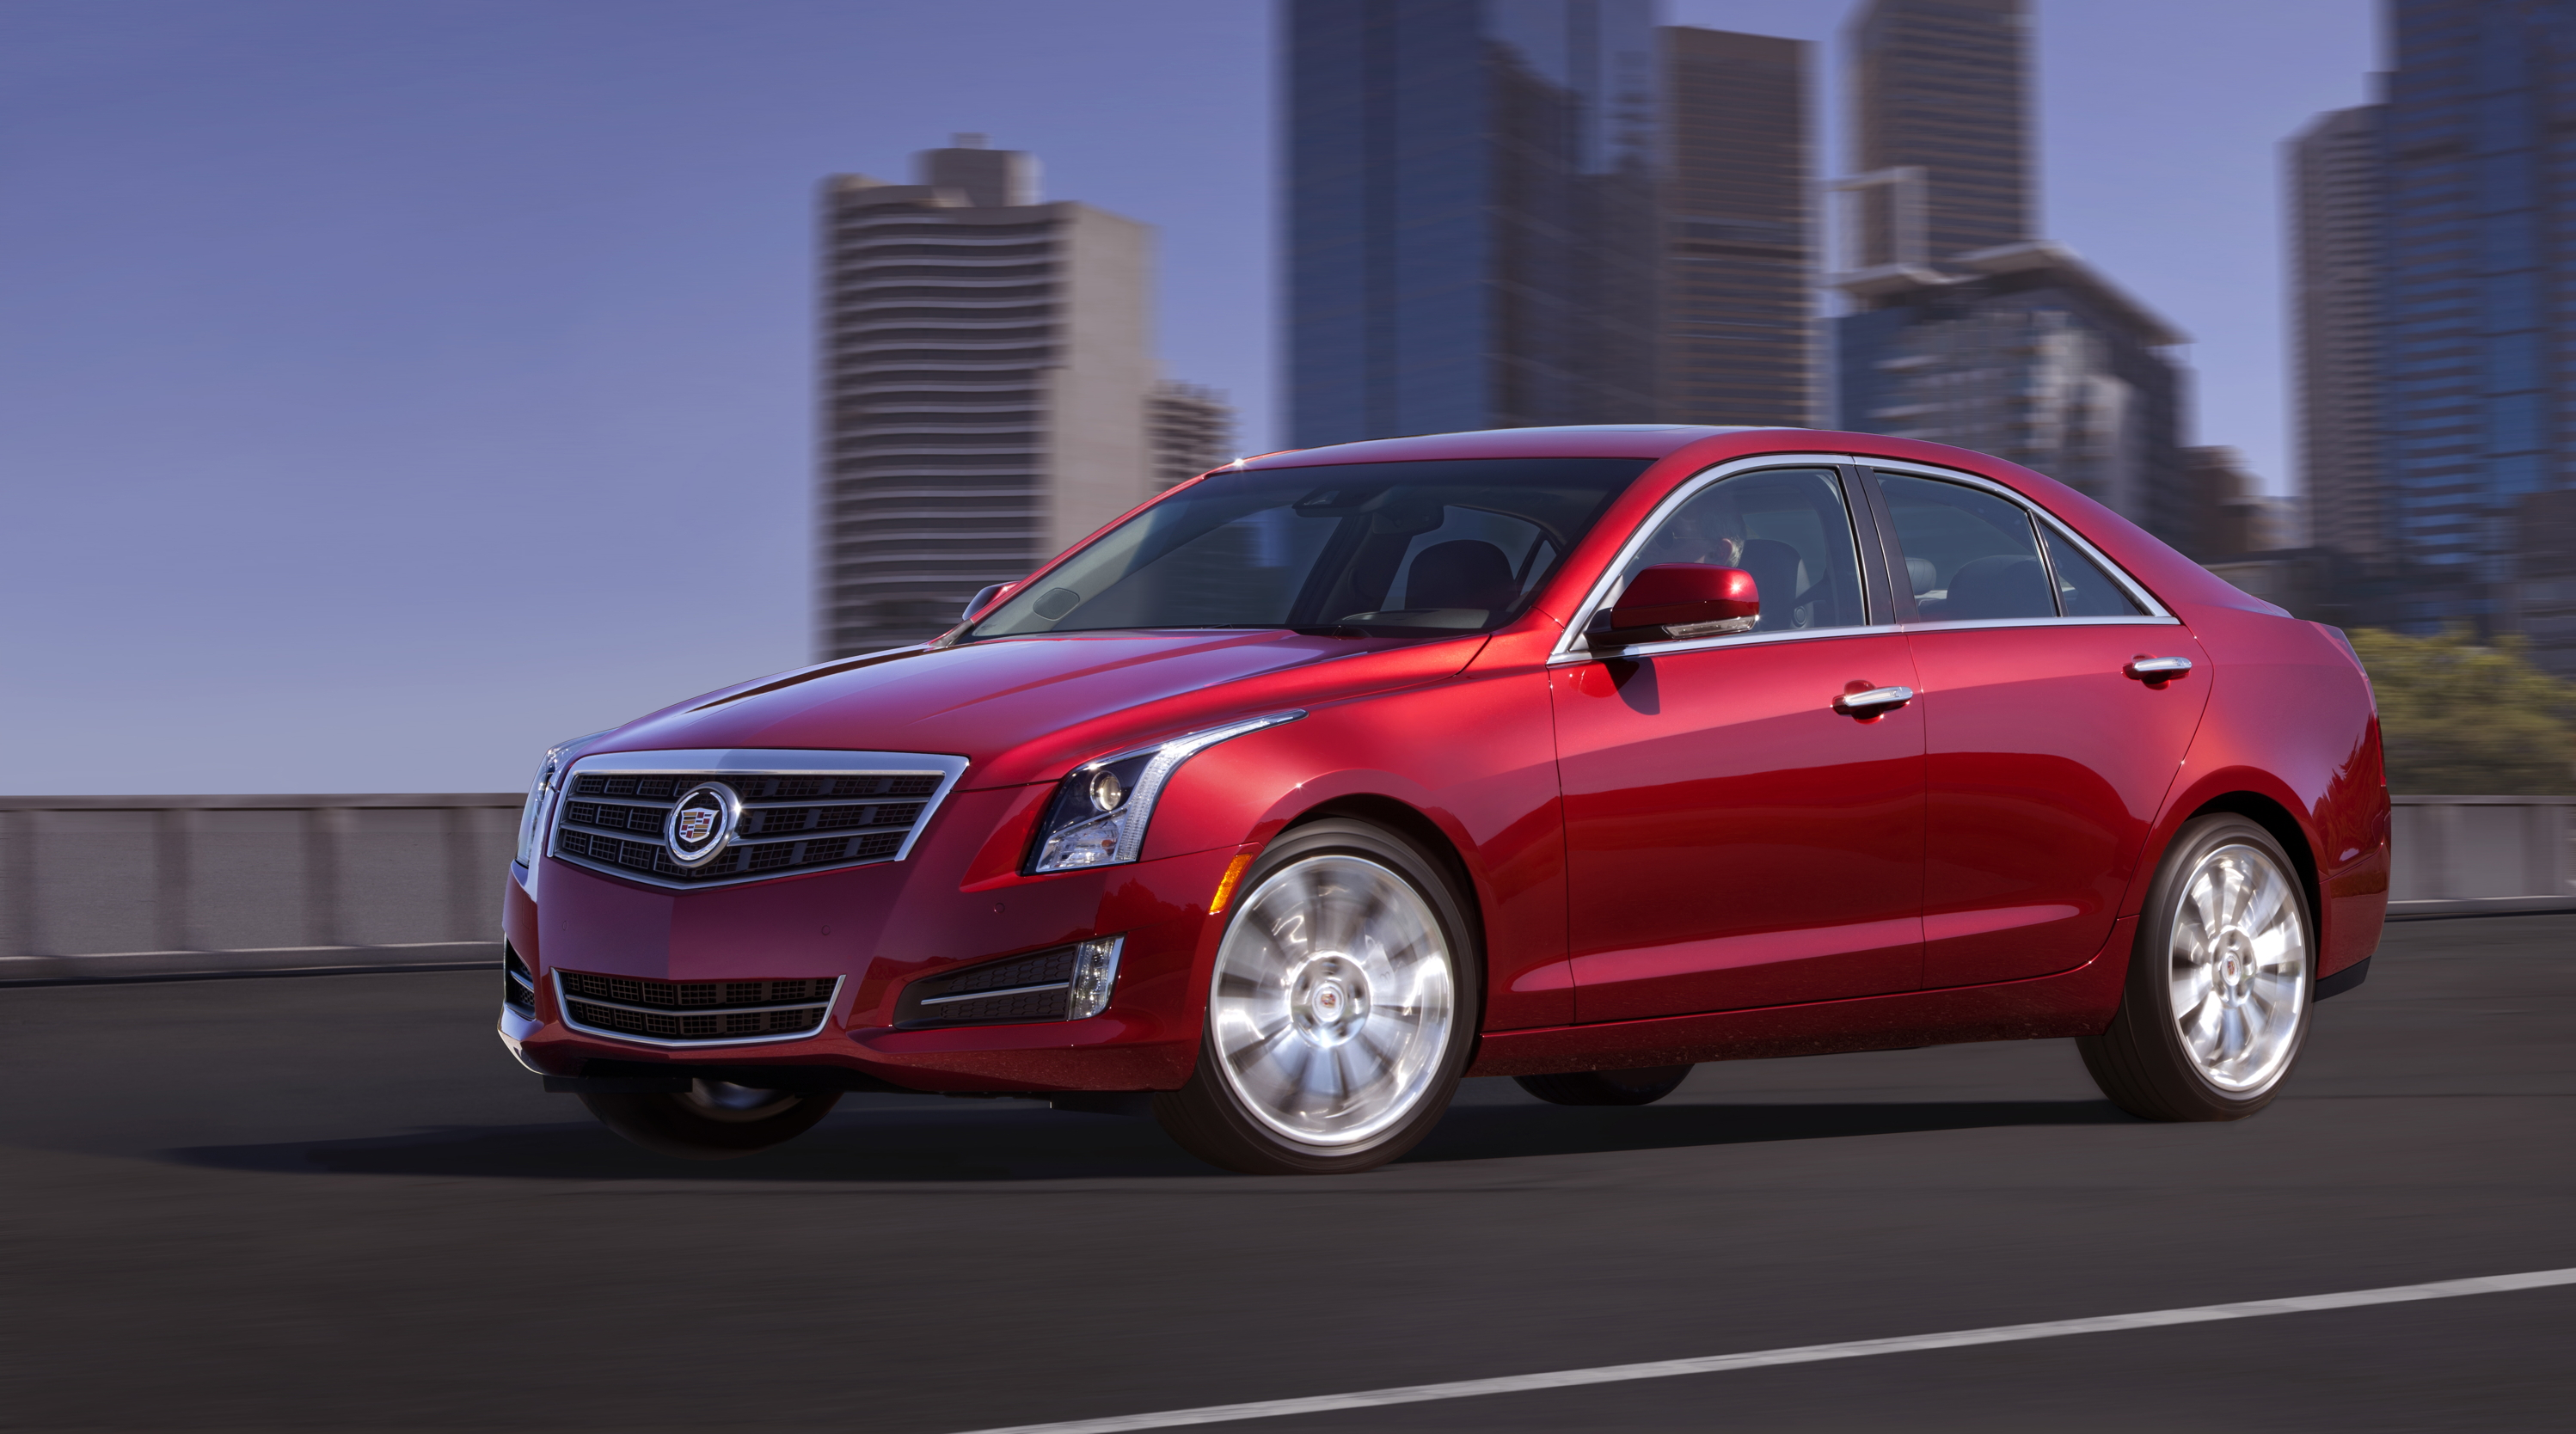 Detroit 2012 Gm Announces 2013 Cadillac Ats 171 Road Reality